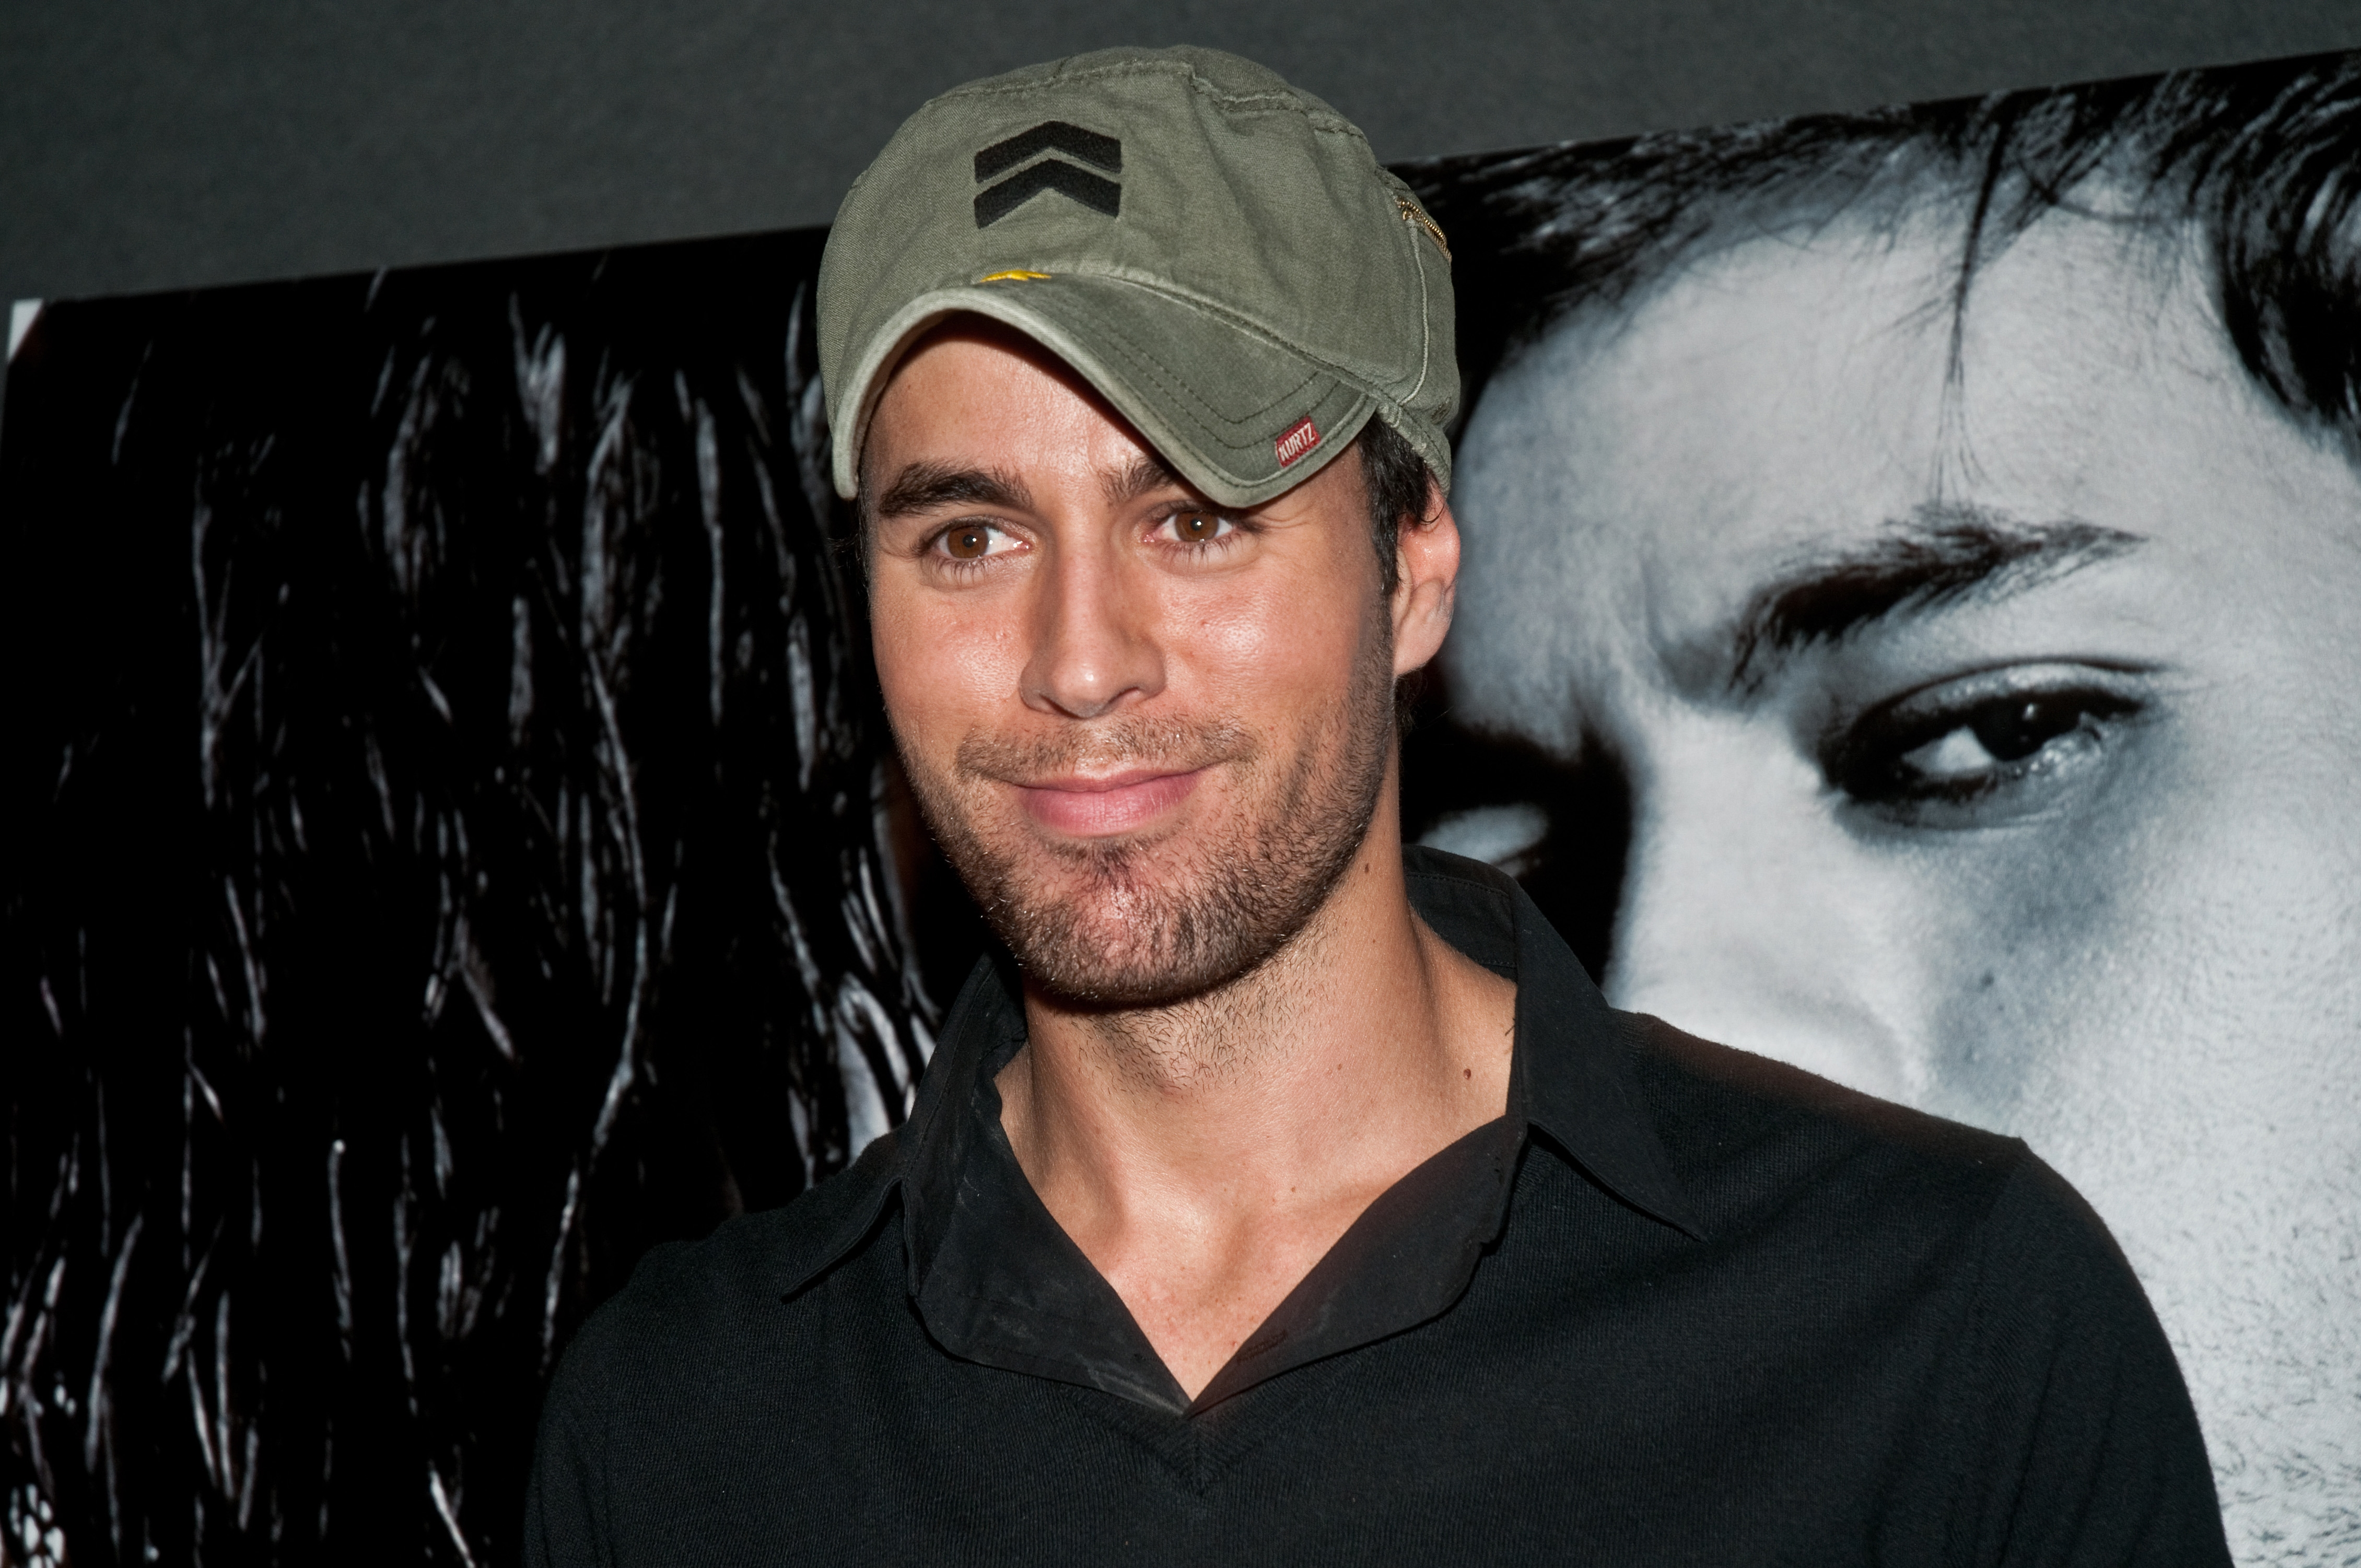 Enrique Iglesias Naked: In Video Singer, Water Skiing Nude